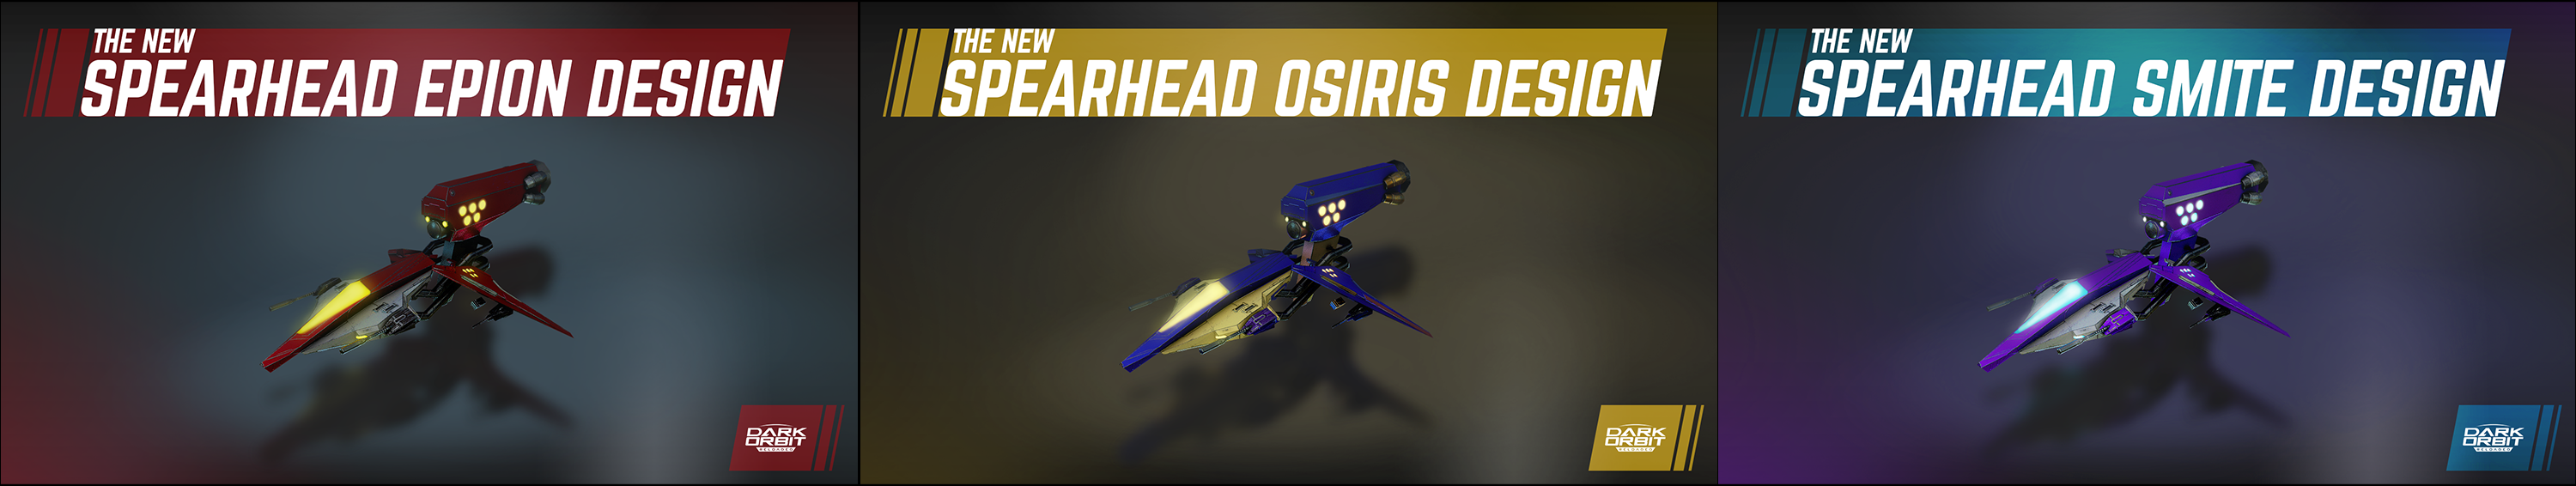 spearhead_all_201908.png